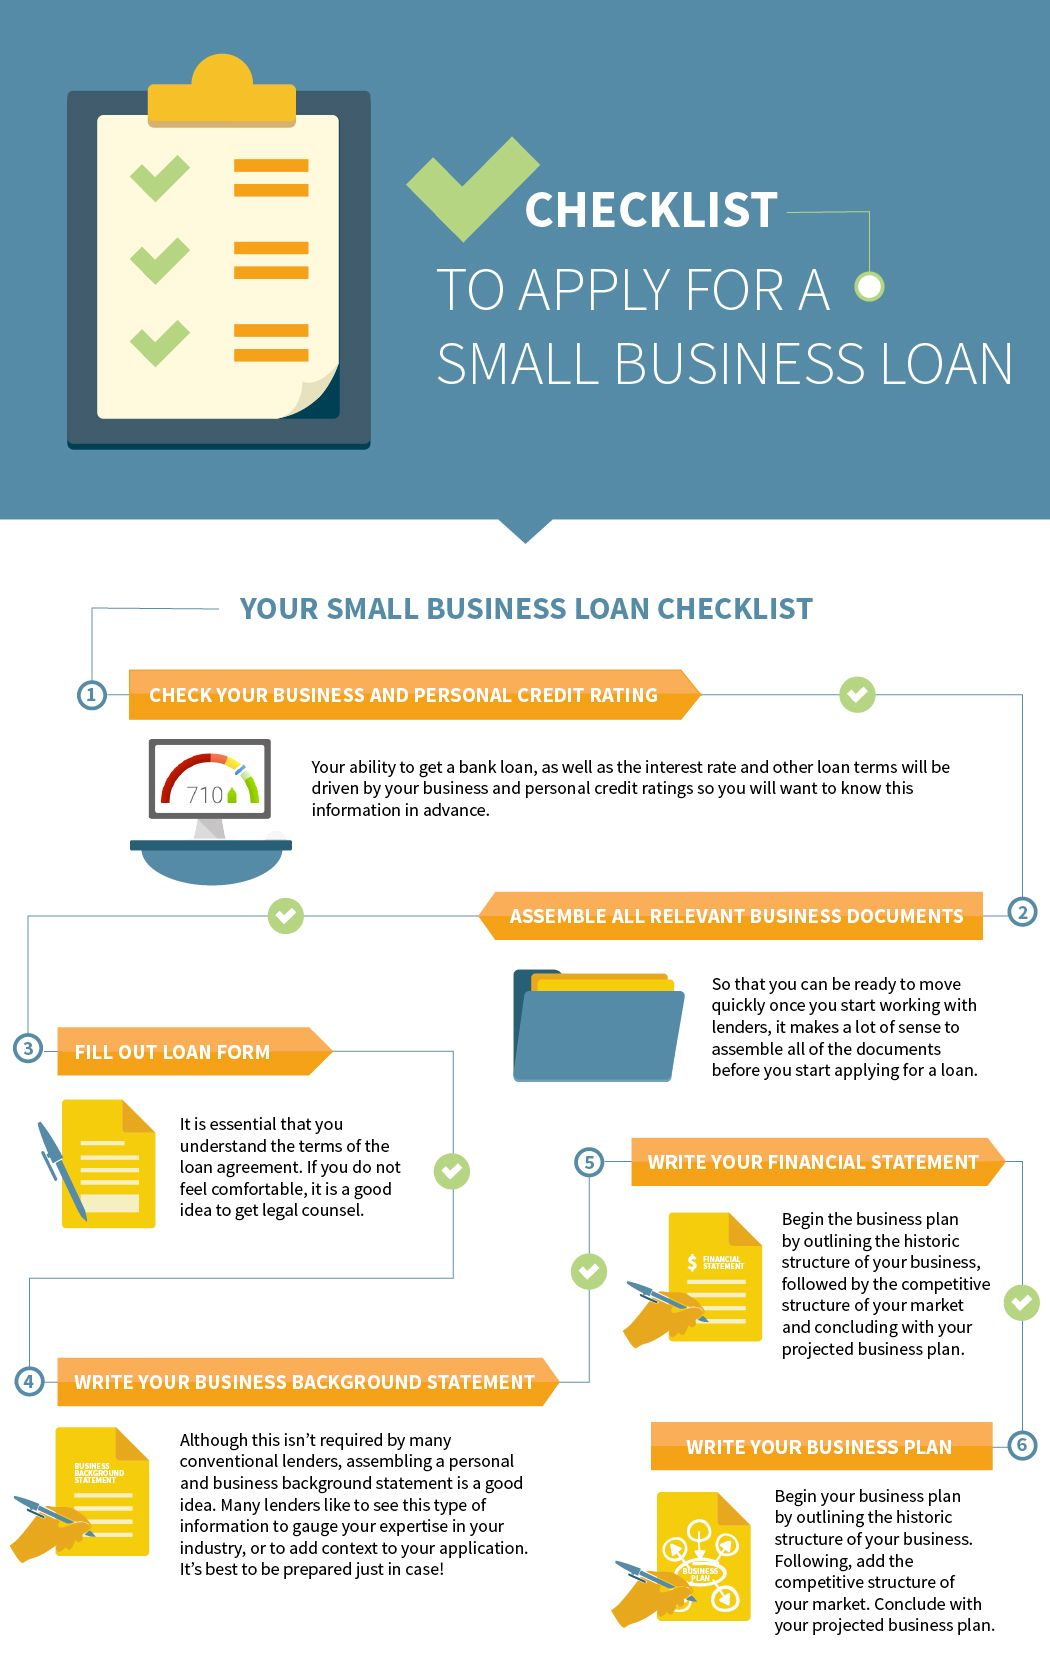 How To Apply For A Small Business Loan Small Business Loans Business Loans Small Business